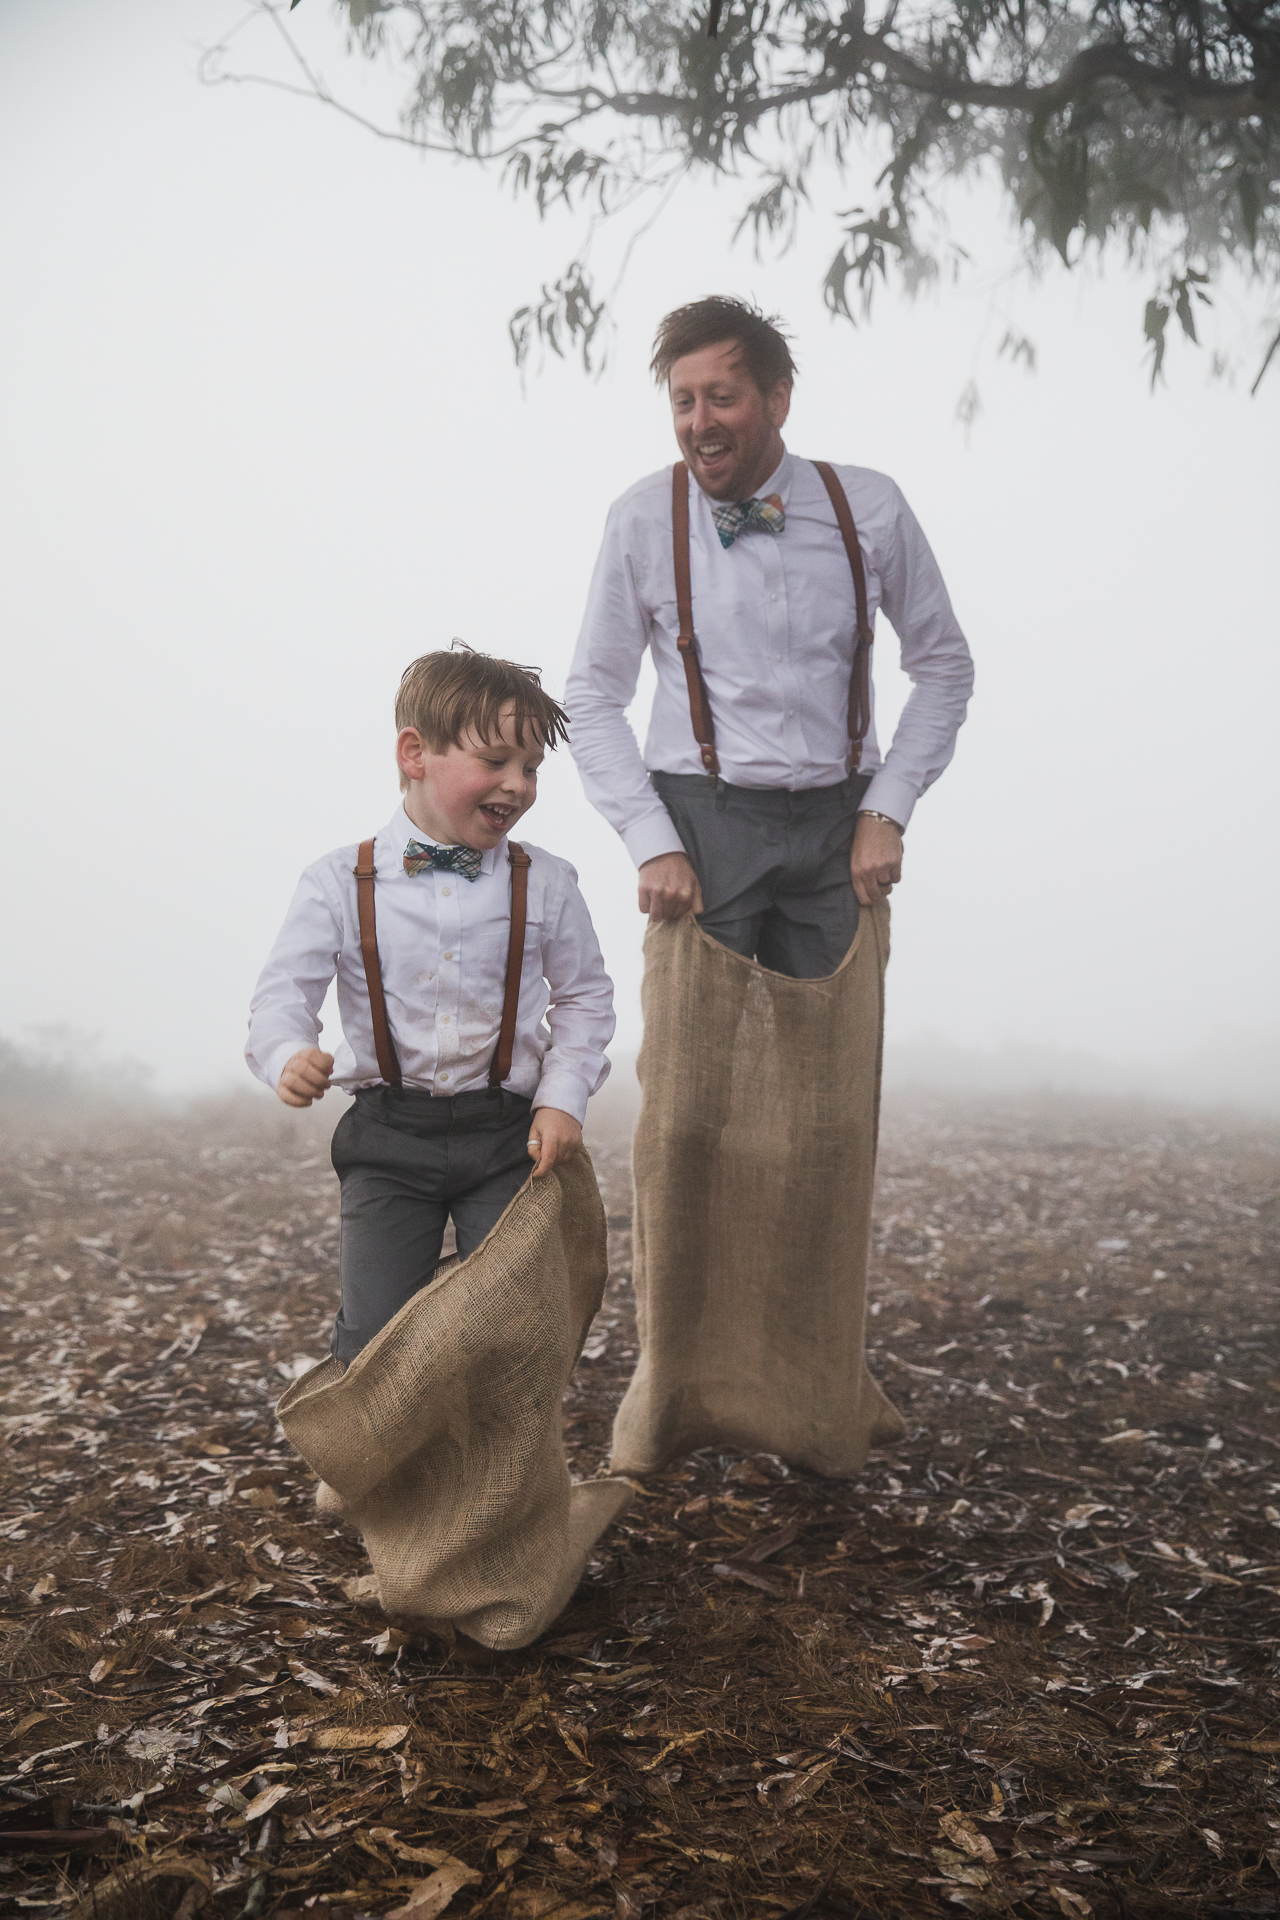 Coastal Live Oak Tree, Stinson Beach in Marin County, CA Wedding Photo | a potato sack race